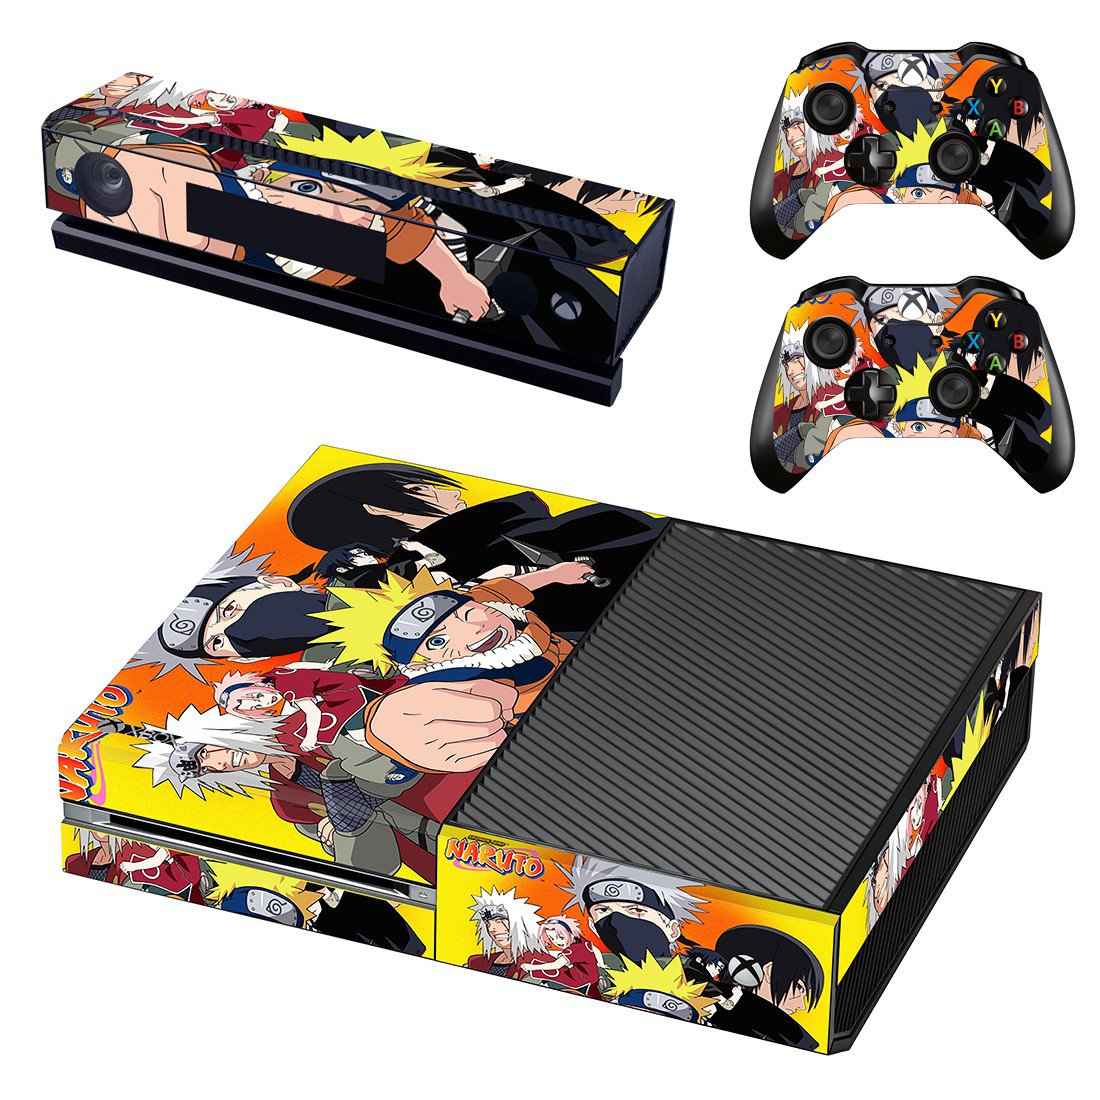 Uzumaki Naruto skin decal for Xbox one console and controllers